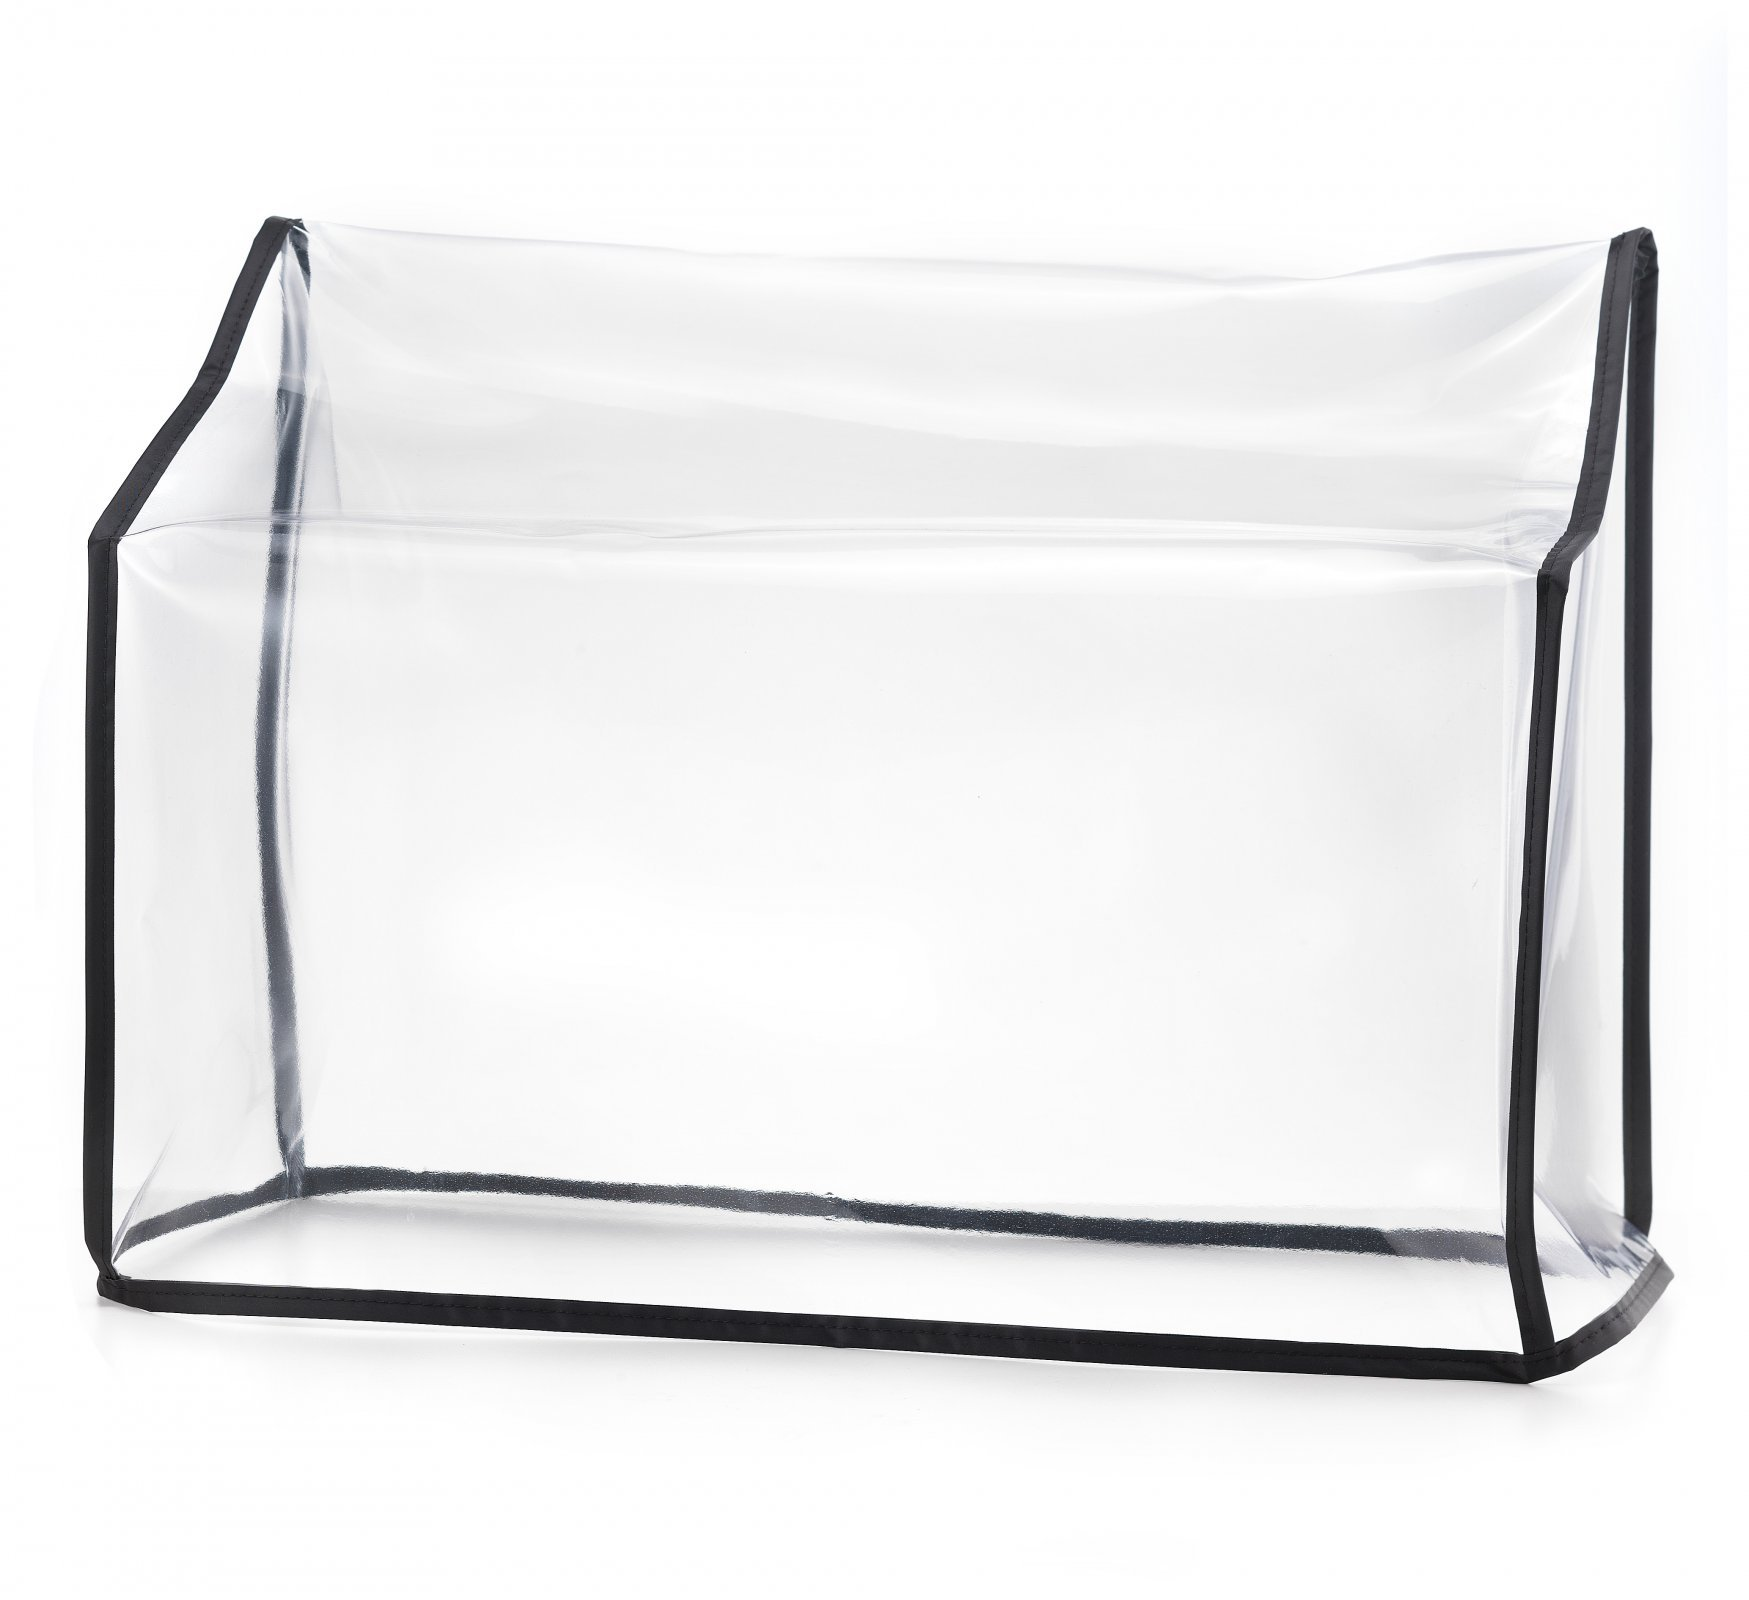 NEW Crystal Clear Fuselli Dust Cover for Accordion - Extra Small 13.5 x 8.5 x 12.5